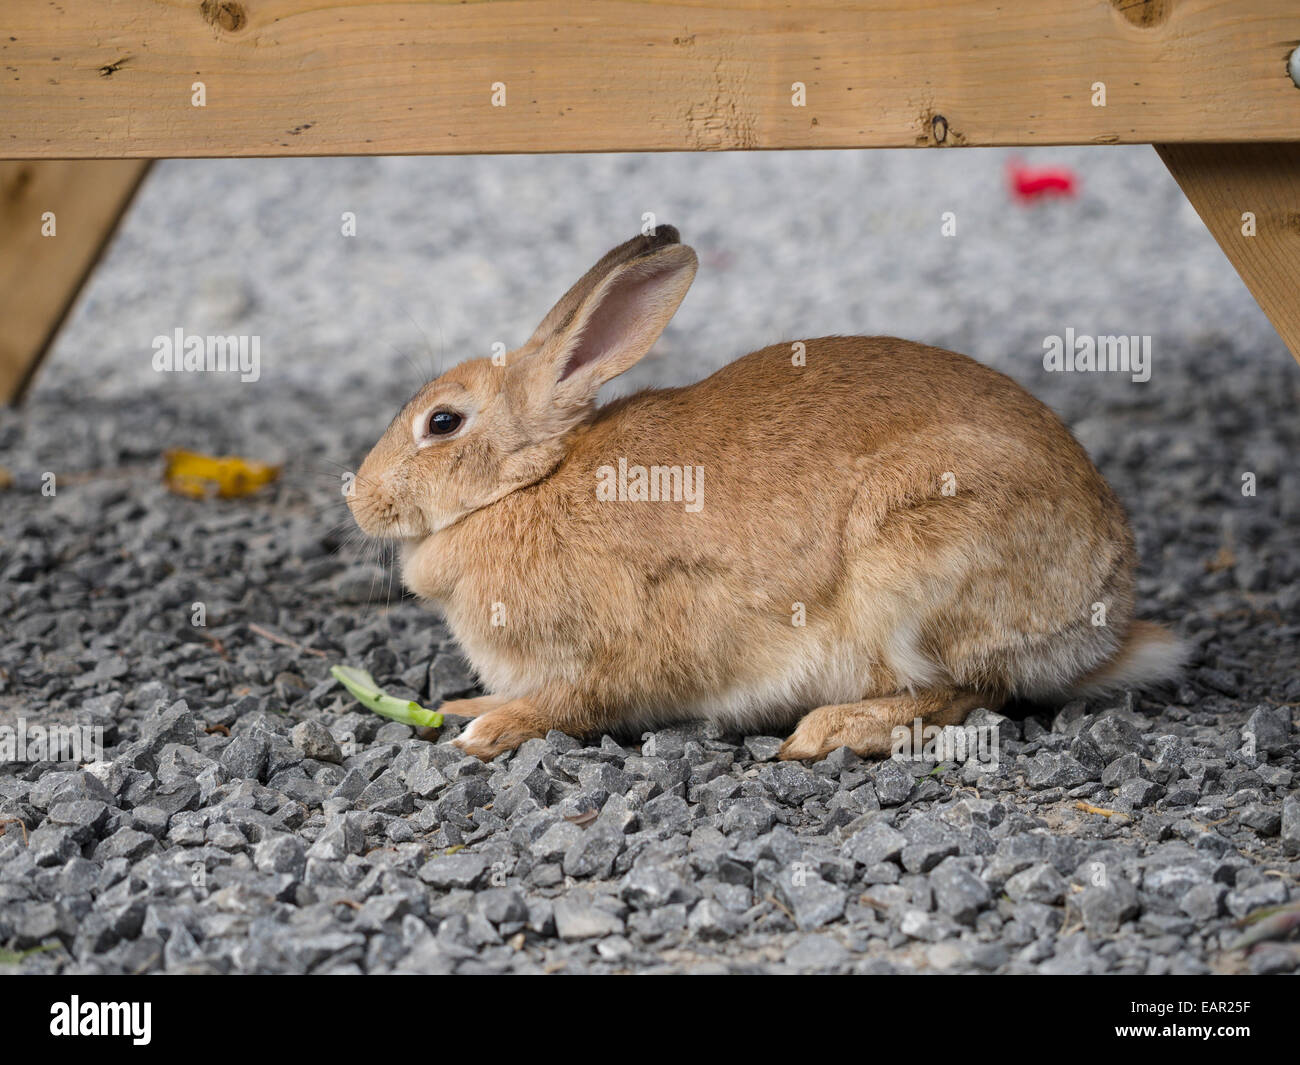 Brown Rabbit Stock Photos Amp Brown Rabbit Stock Images Alamy